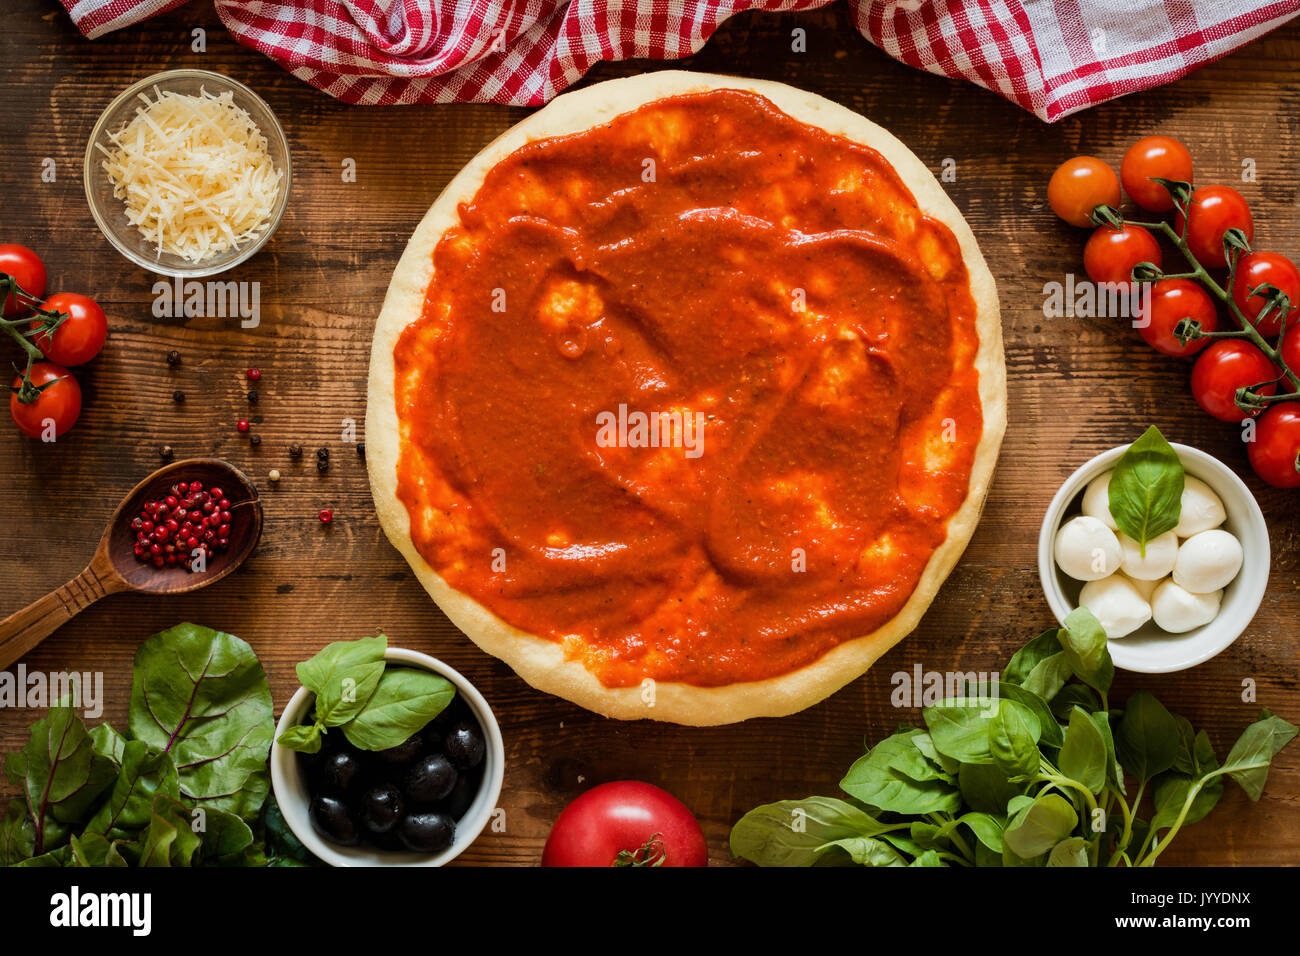 Prepared pizza dough with tomato sauce and ingredients on rustic wooden background. Cherry tomatoes, basil, mozzarella Stock Photo